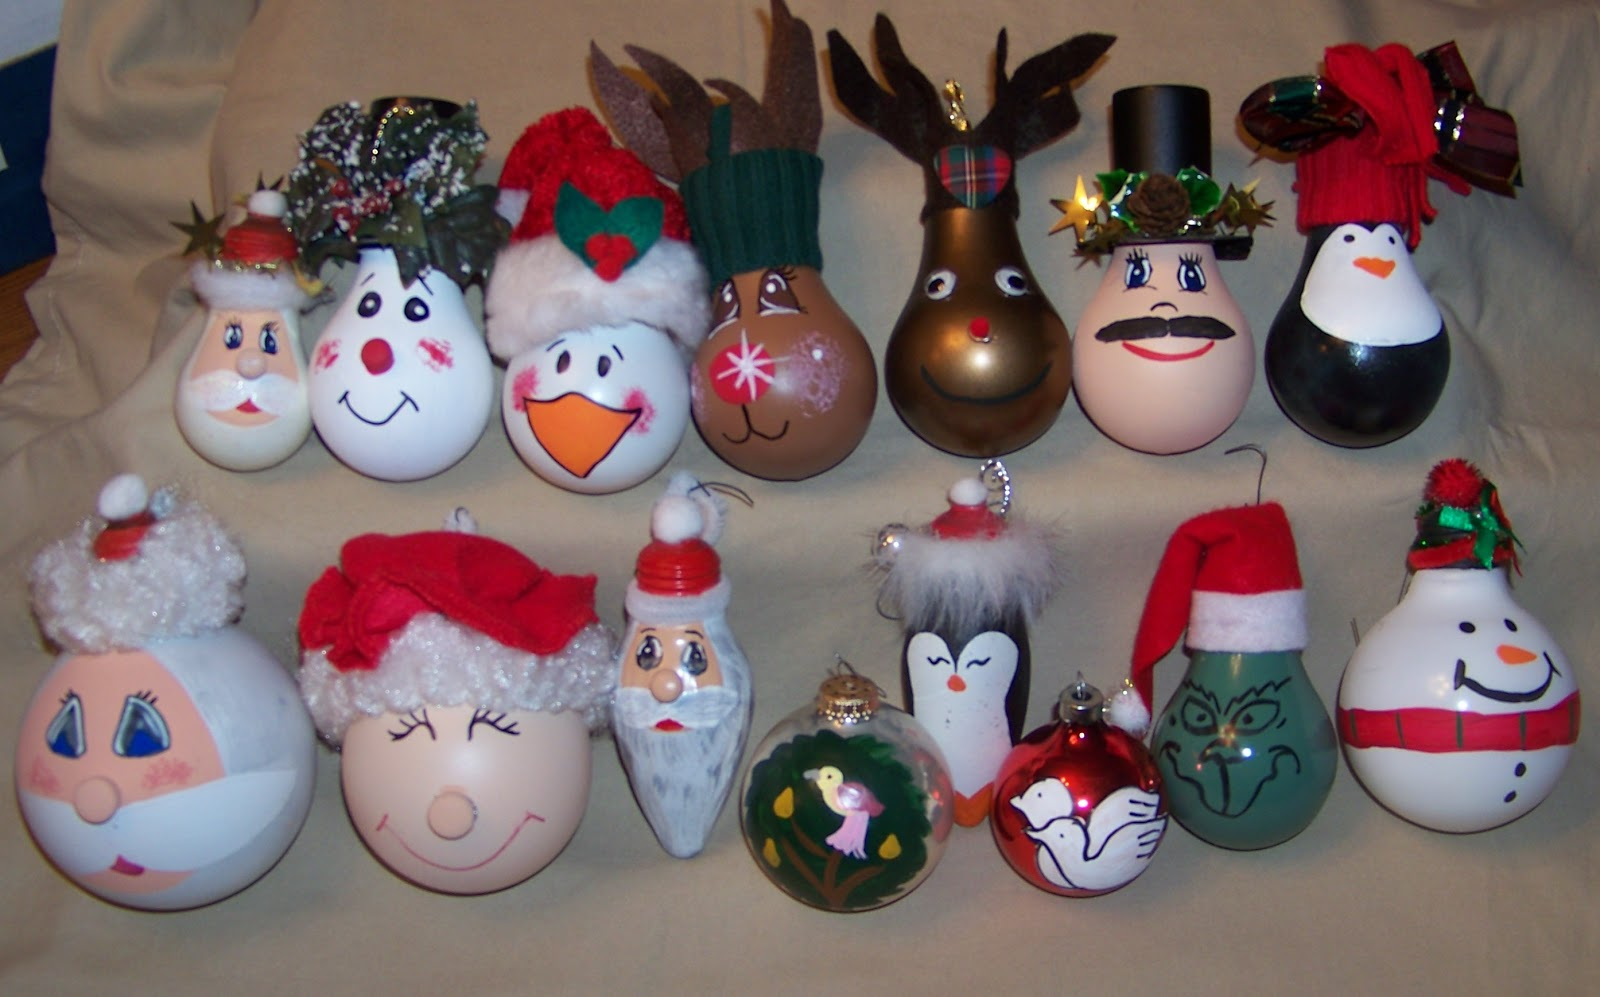 My Creative Side: Recycled Light Bulb Ornaments